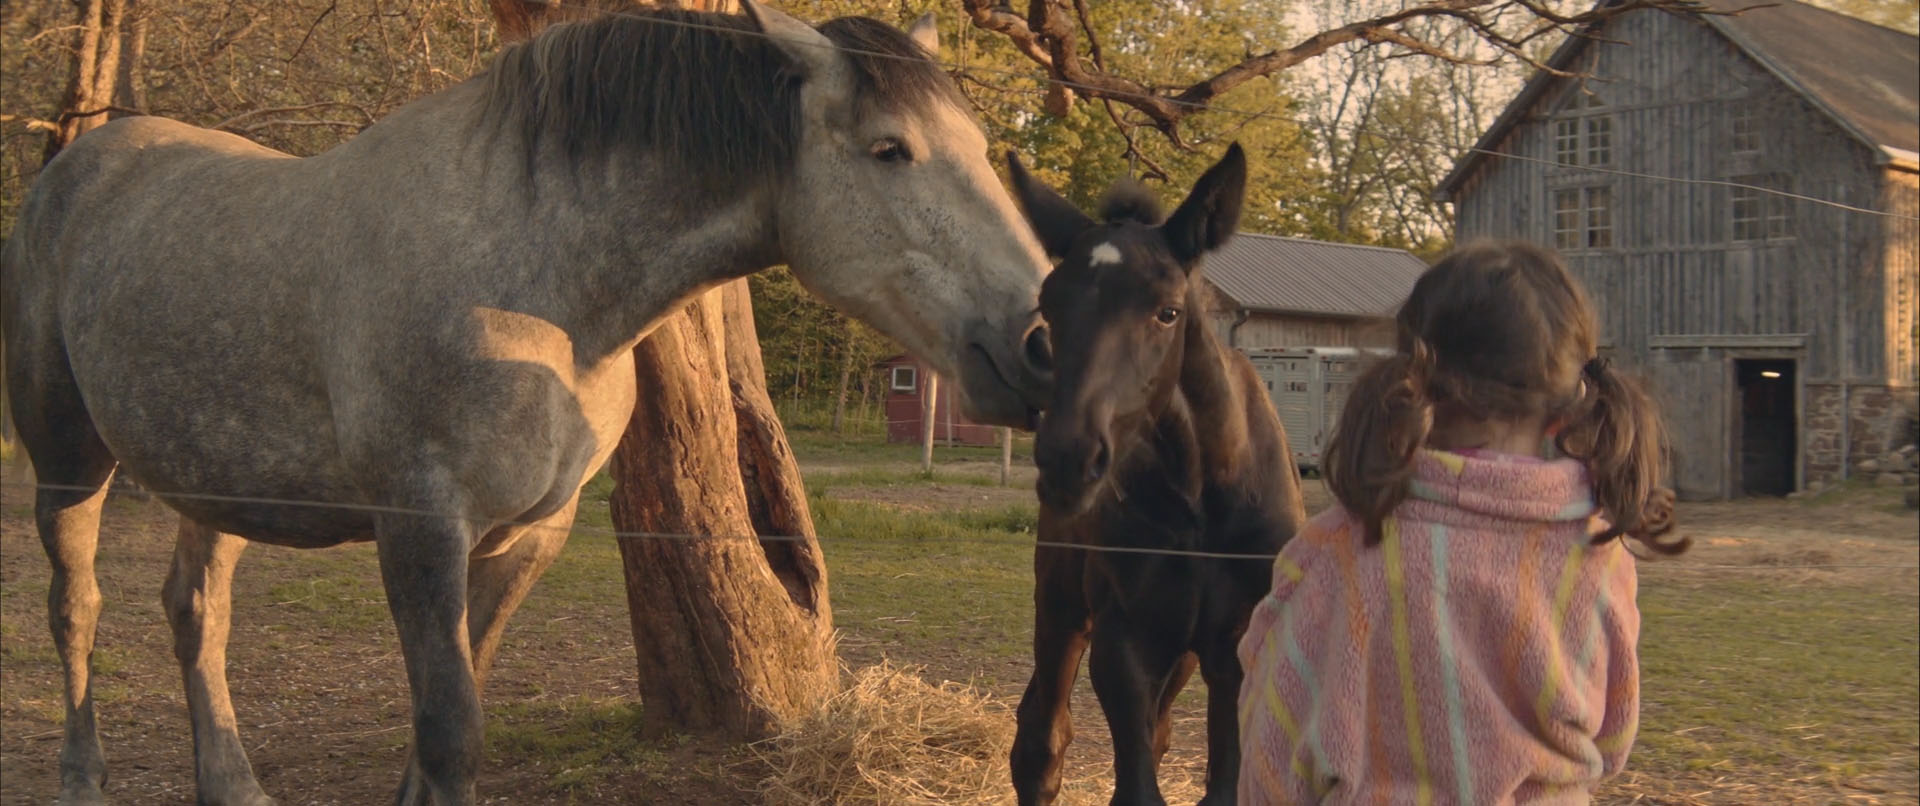 In this scene from The Wish Horse, Kitty visits the magical foal, Poppy, and Poppy's mother.